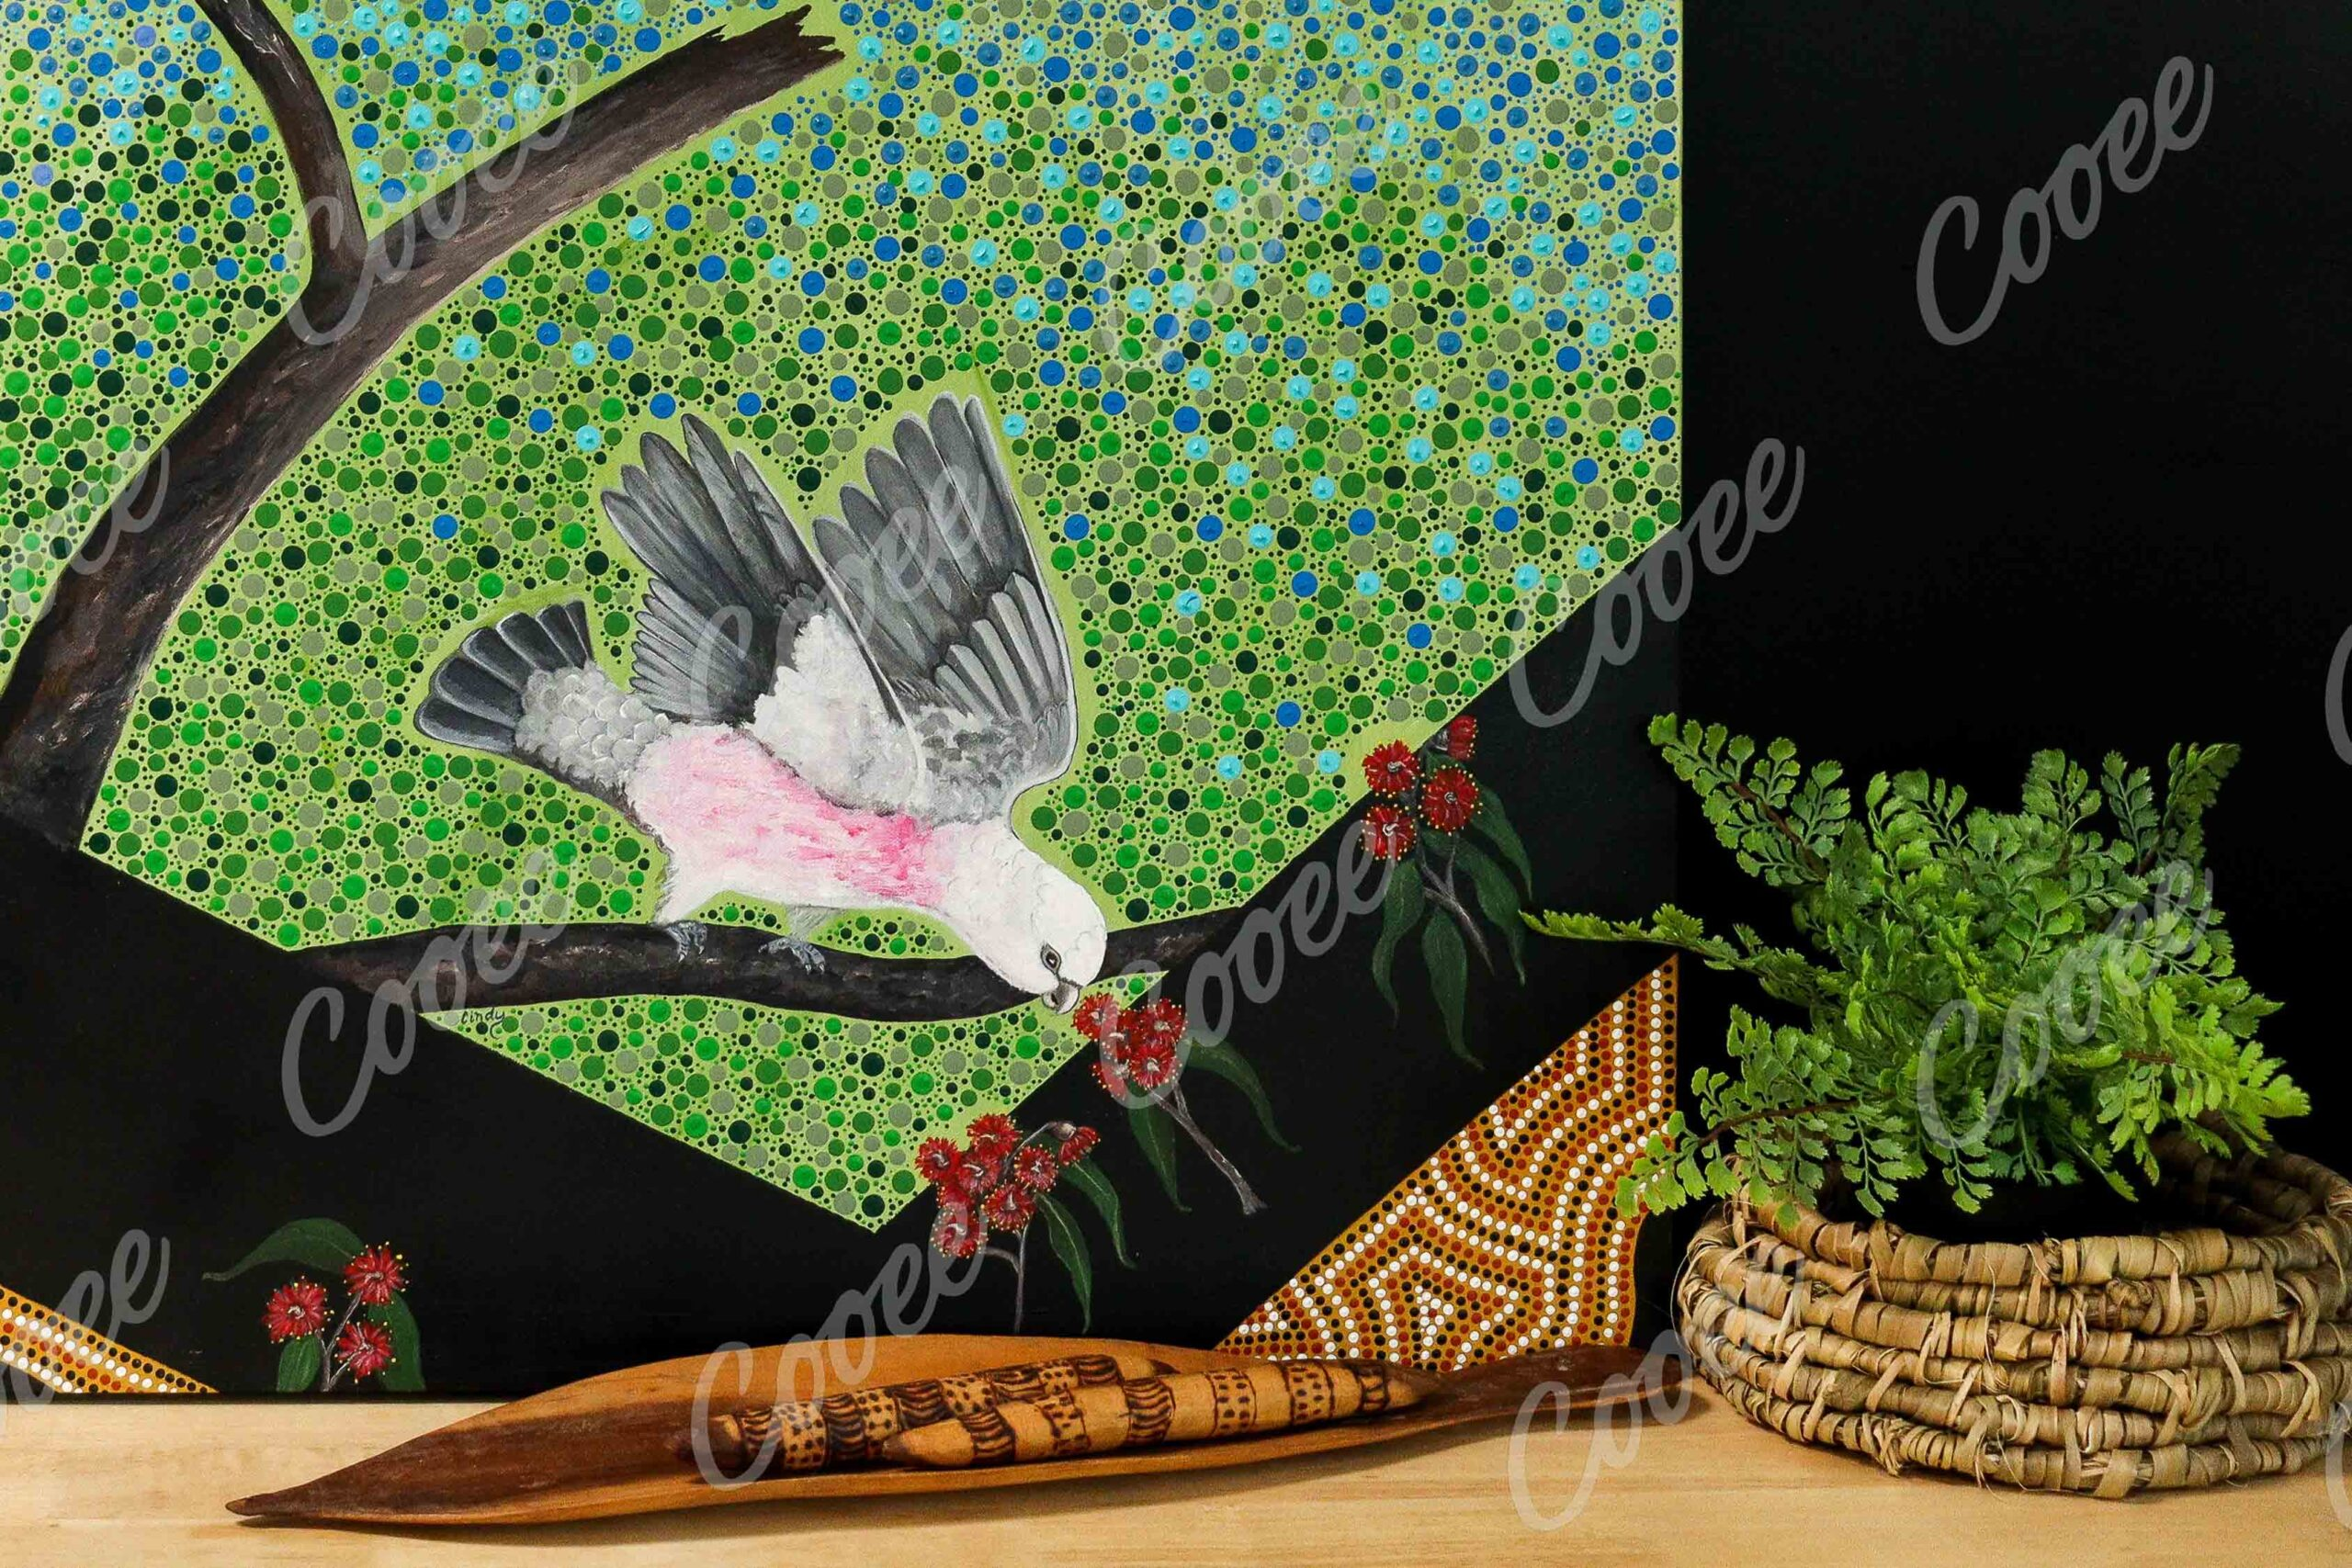 Cooee-Cafe-Original-Indigenous-Painting43